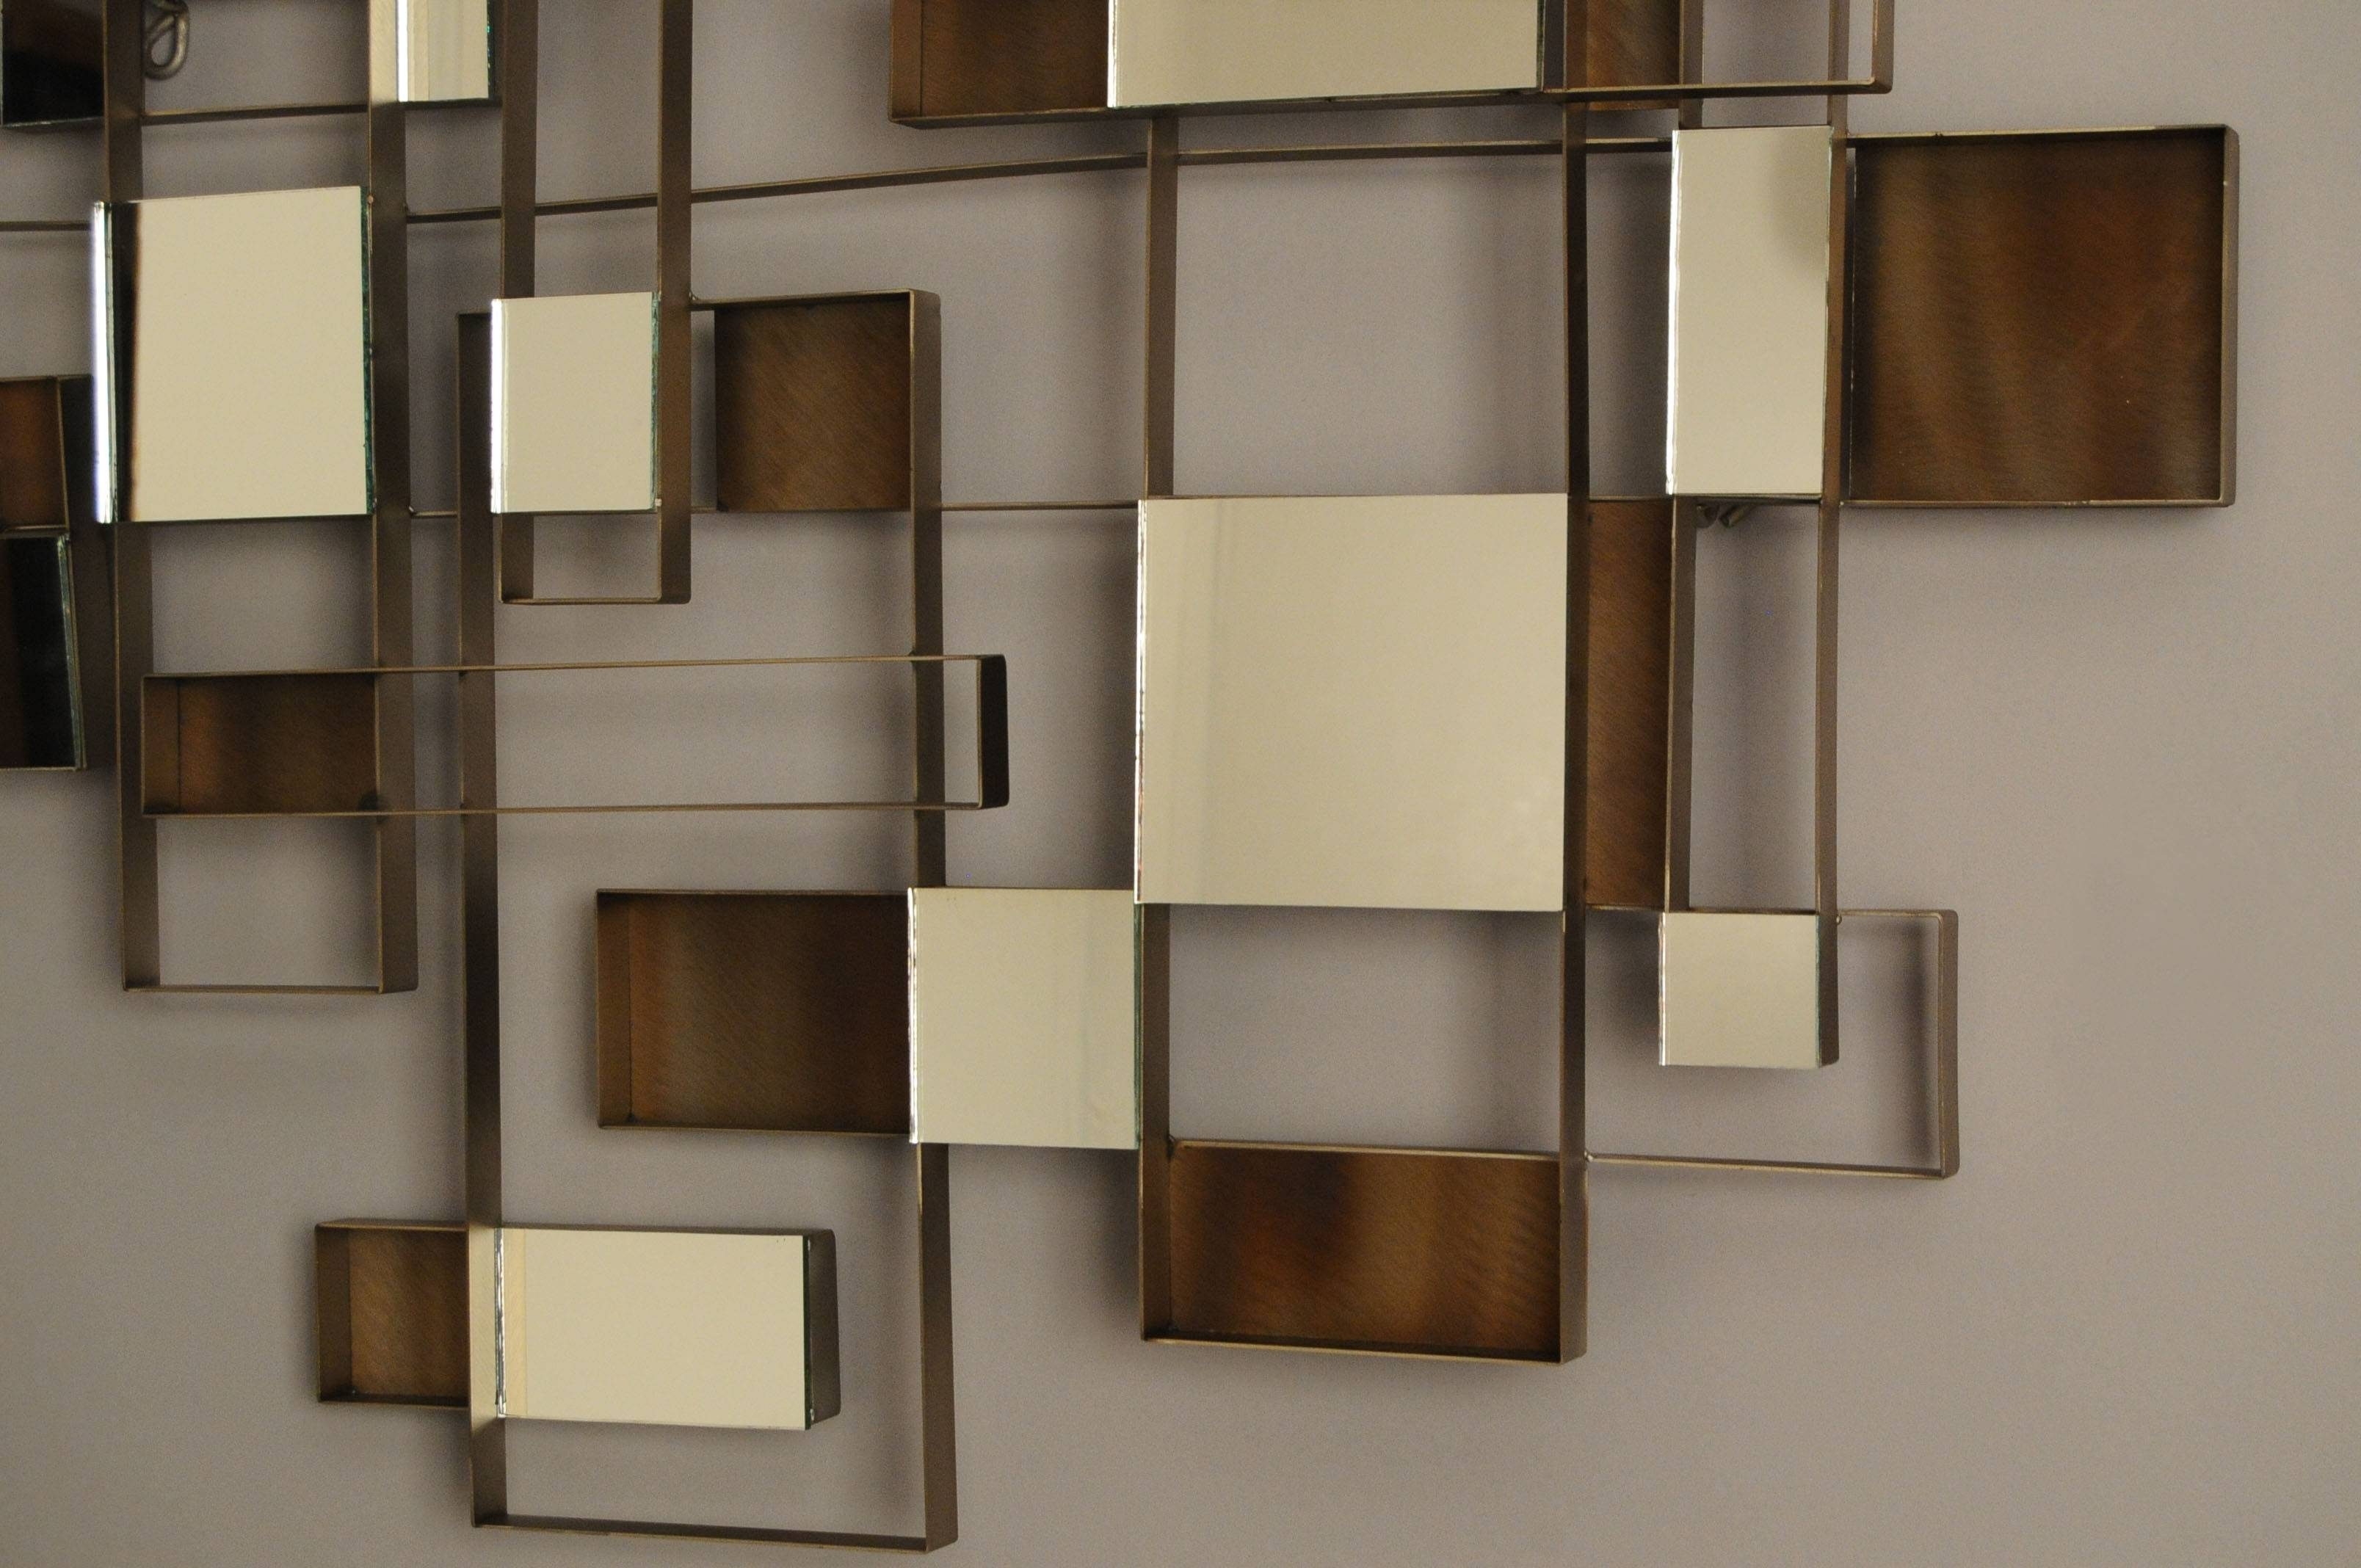 Bedroom : Good Looking Photos Of New At Property 2017 Modern Regarding Newest Mirrors Modern Wall Art (View 2 of 20)